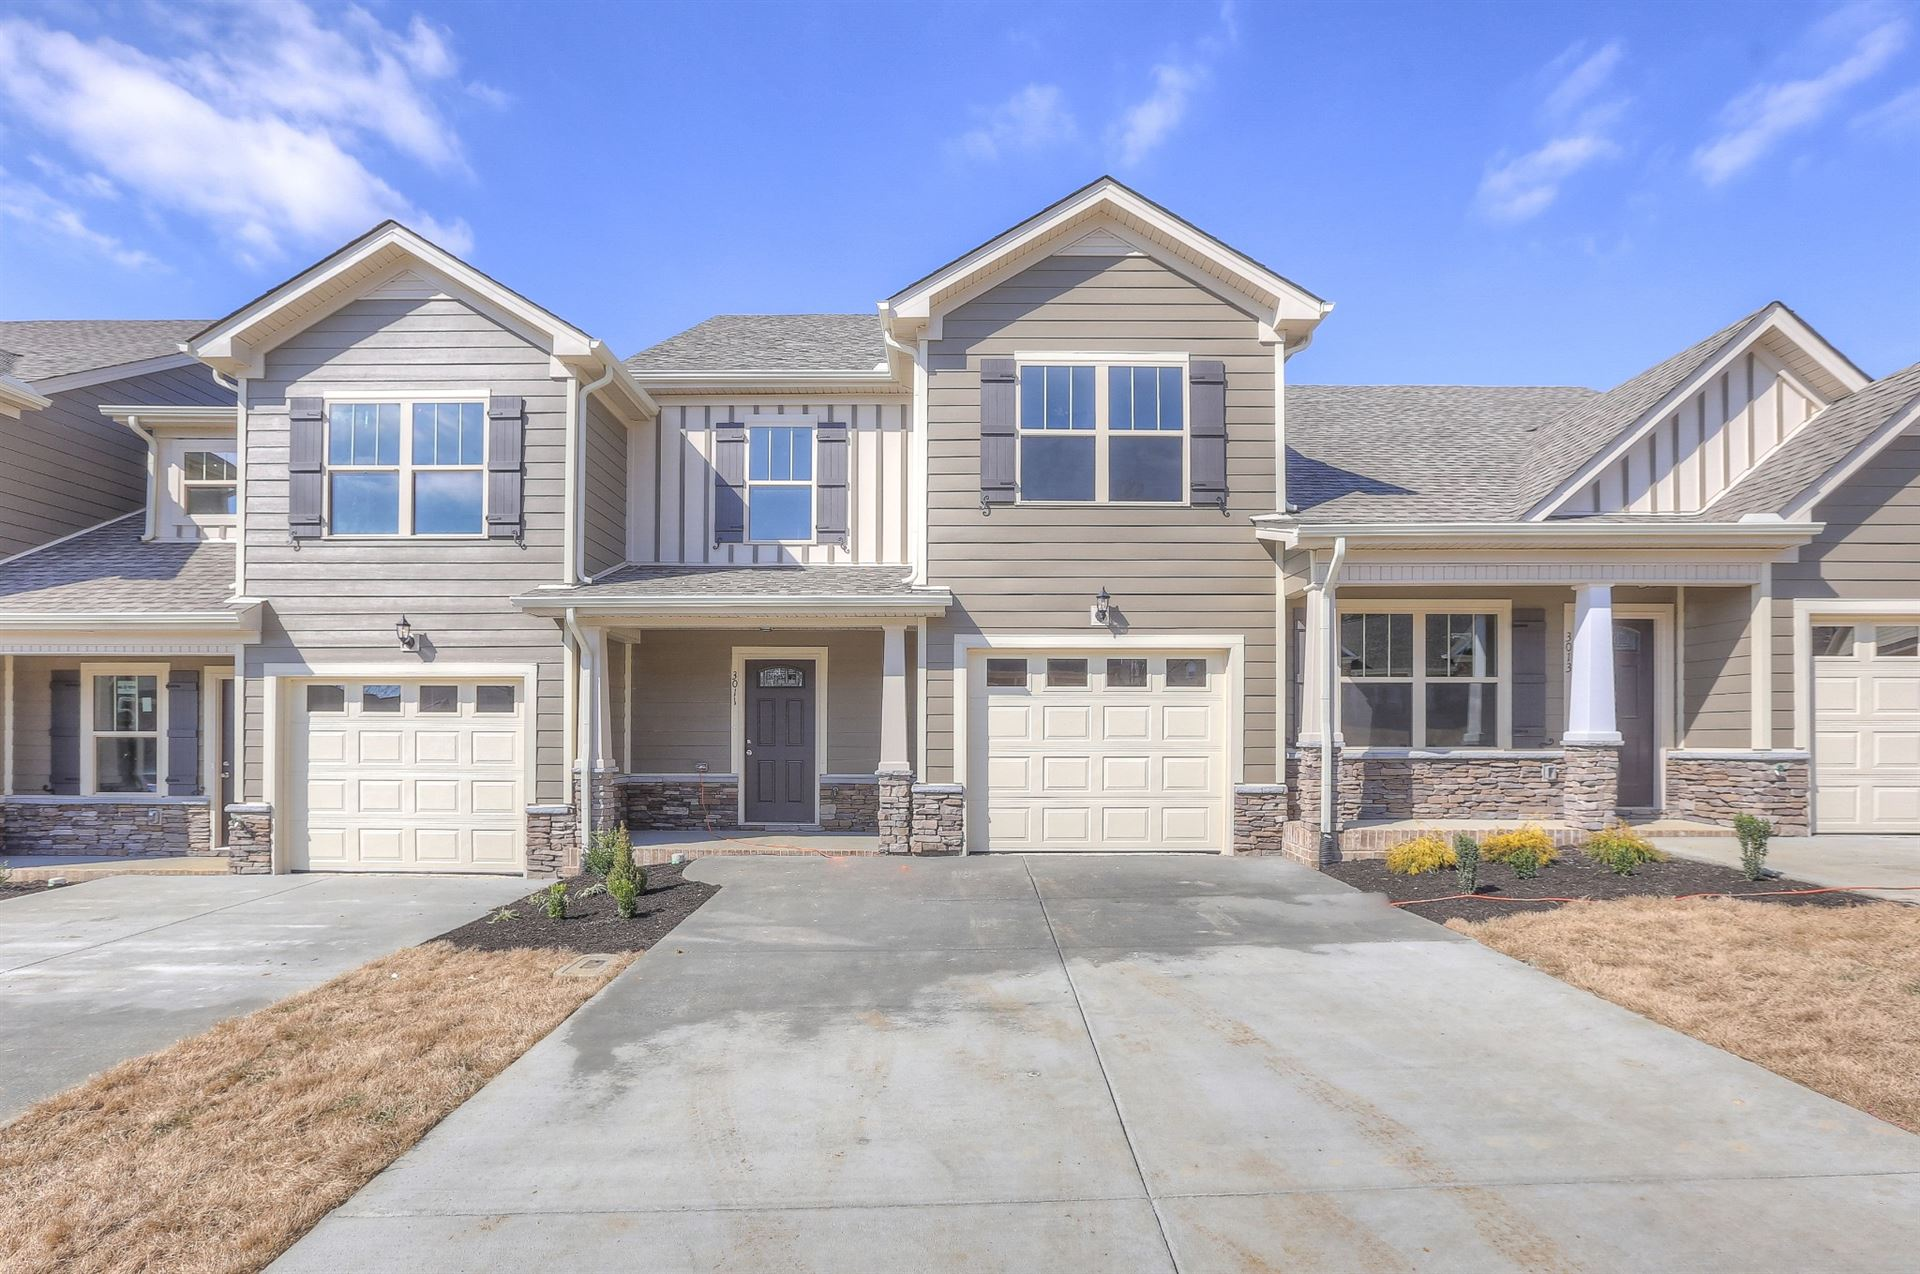 Photo of 204 Ruth Way (Lot 45) #45, Spring Hill, TN 37174 (MLS # 2167555)